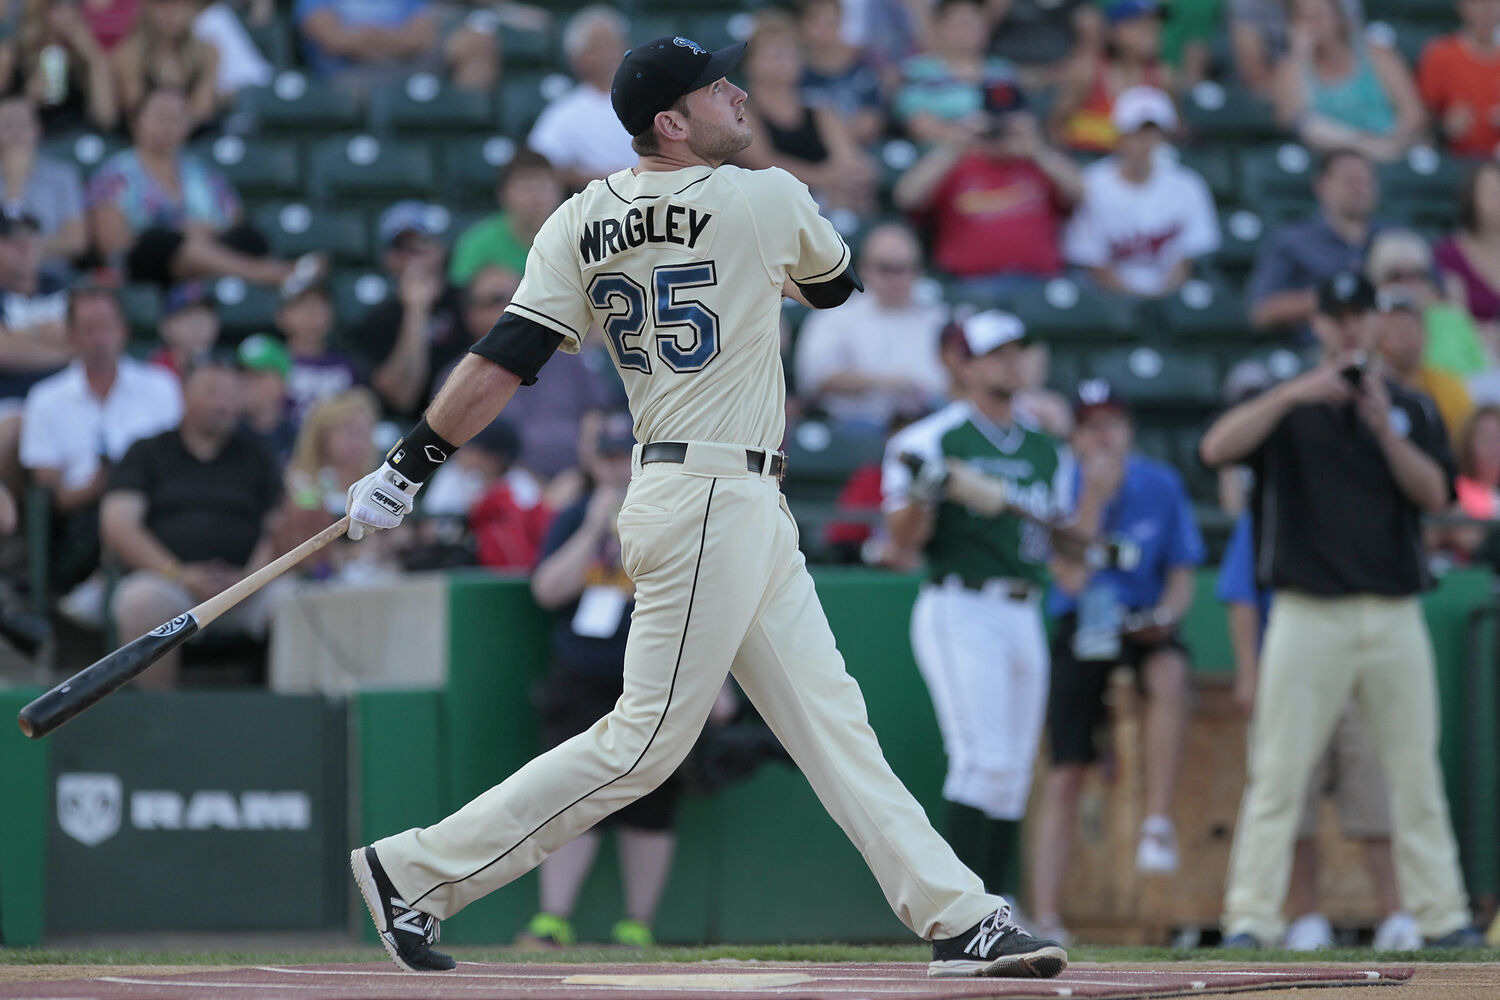 Henry Wrigley of the St. Paul Saints bats during the All-Stars Skills Competition.